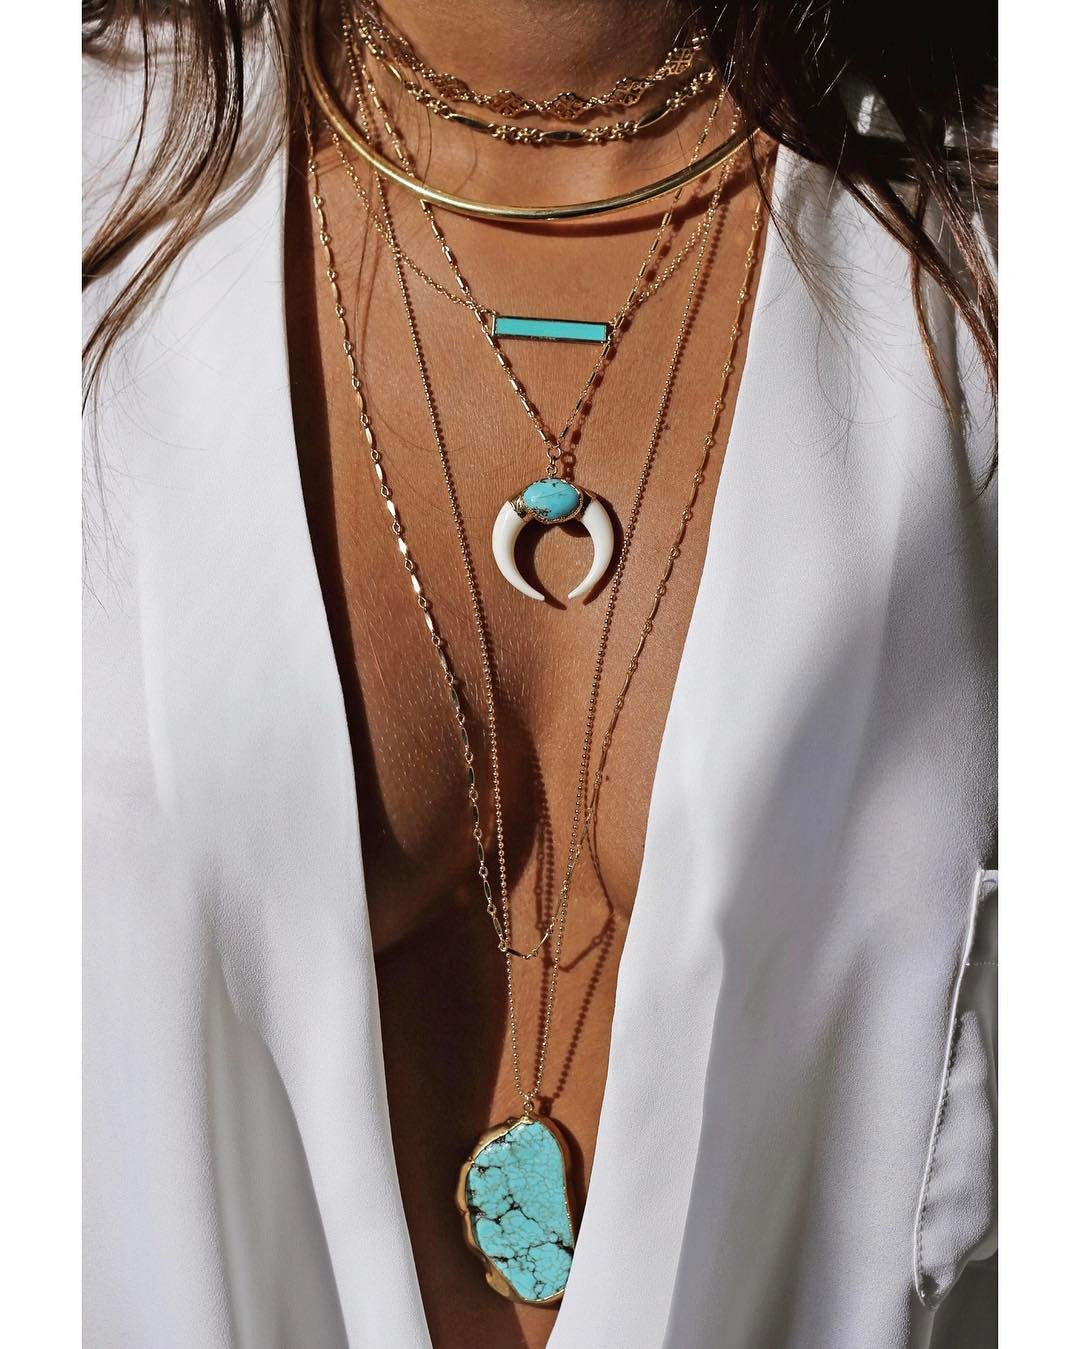 luna necklace - white + turquoise